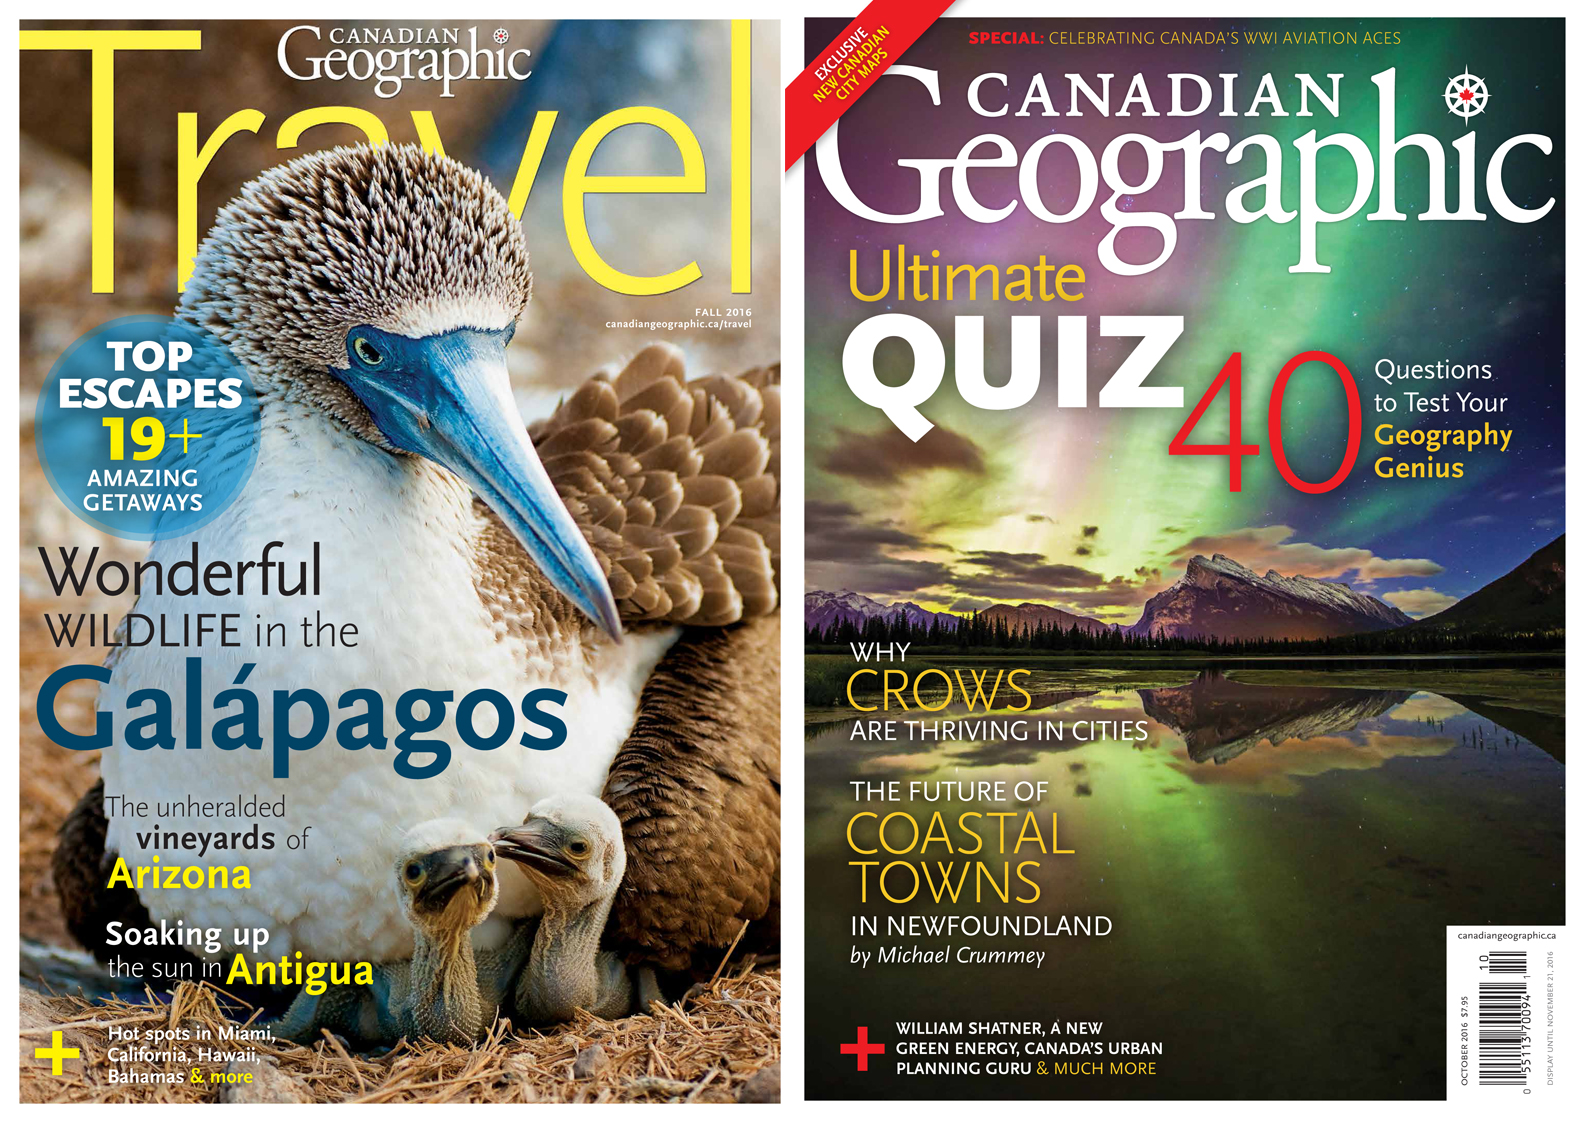 CanGeo Fall Travel cover and October cover 2016